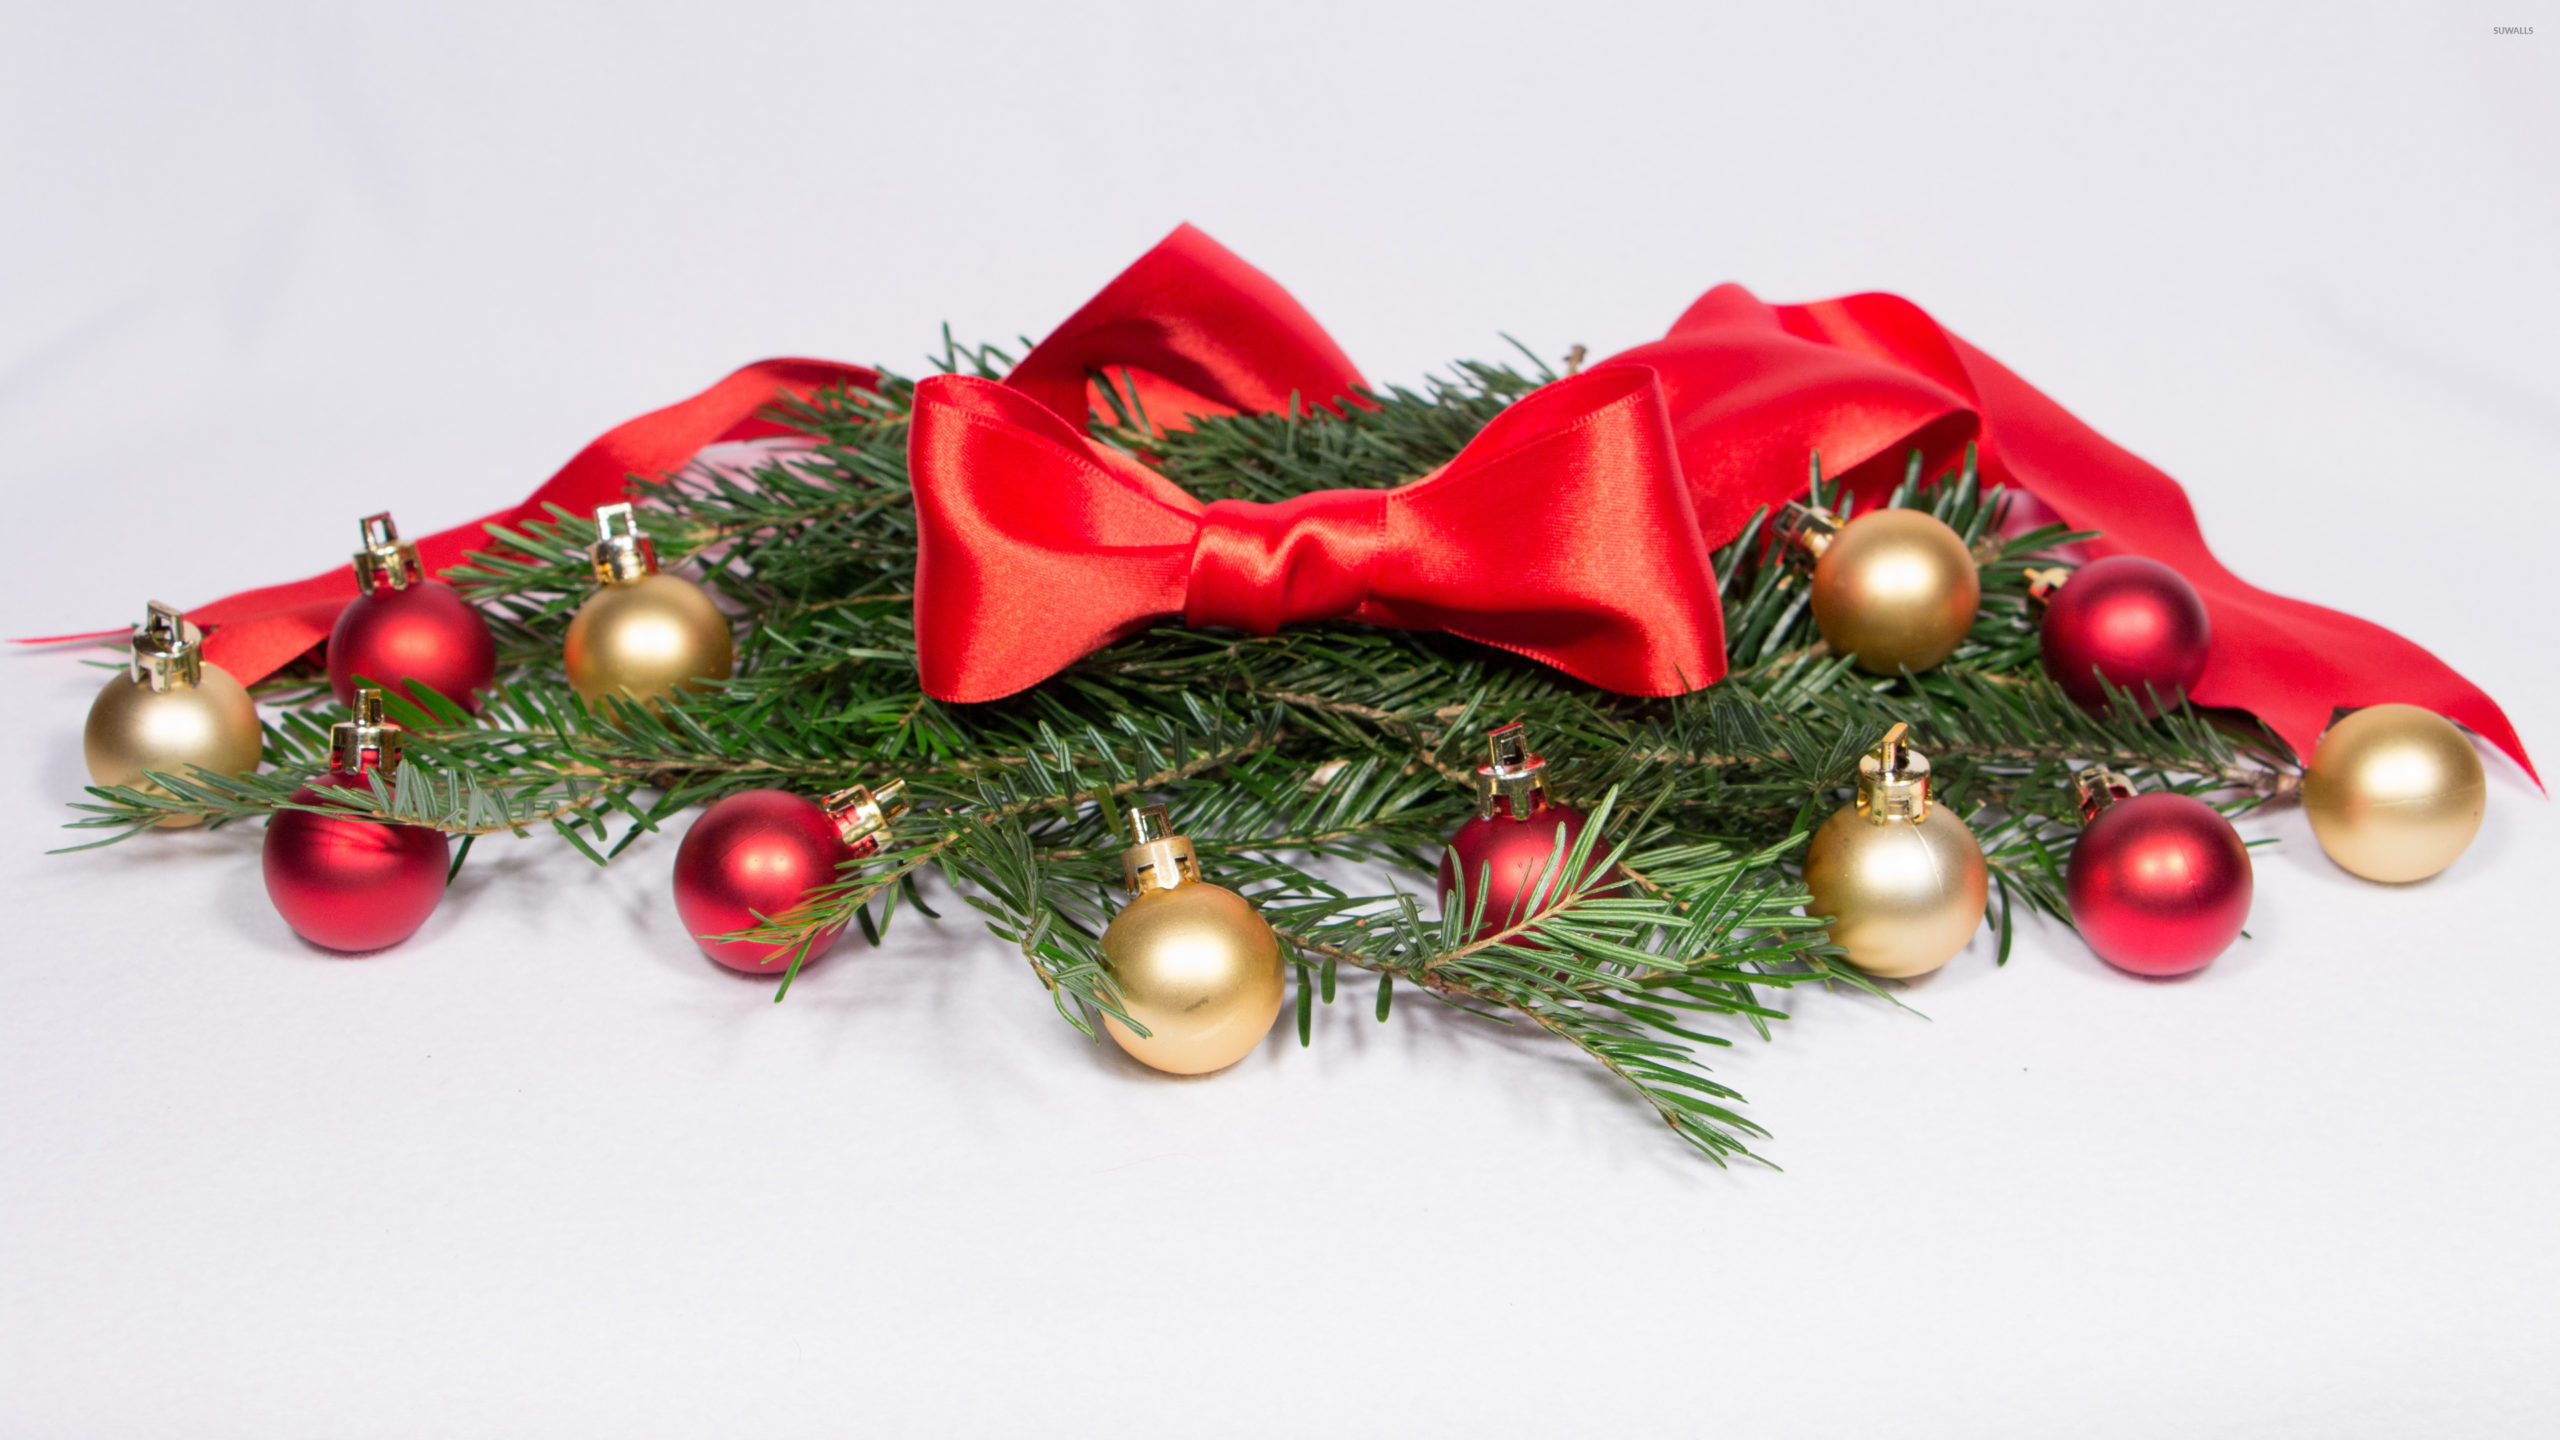 Red Ribbon And Baubles On Fir Branches 51531 3840×2160 Wallpaper